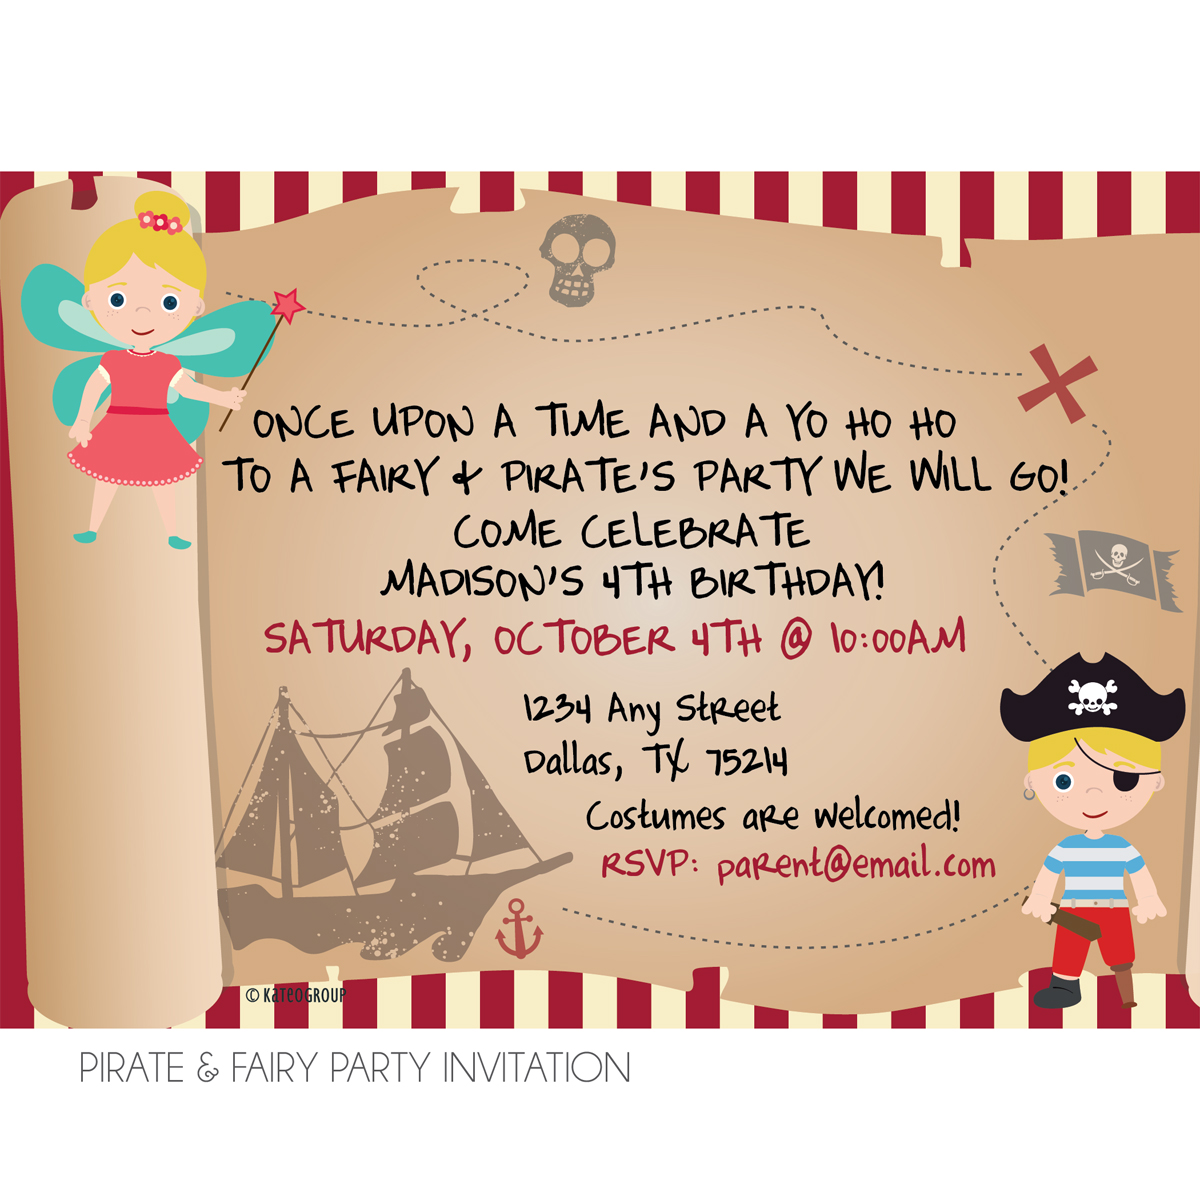 Pirate and Fairy Birthday Party Invitation – Pirate Party Invite